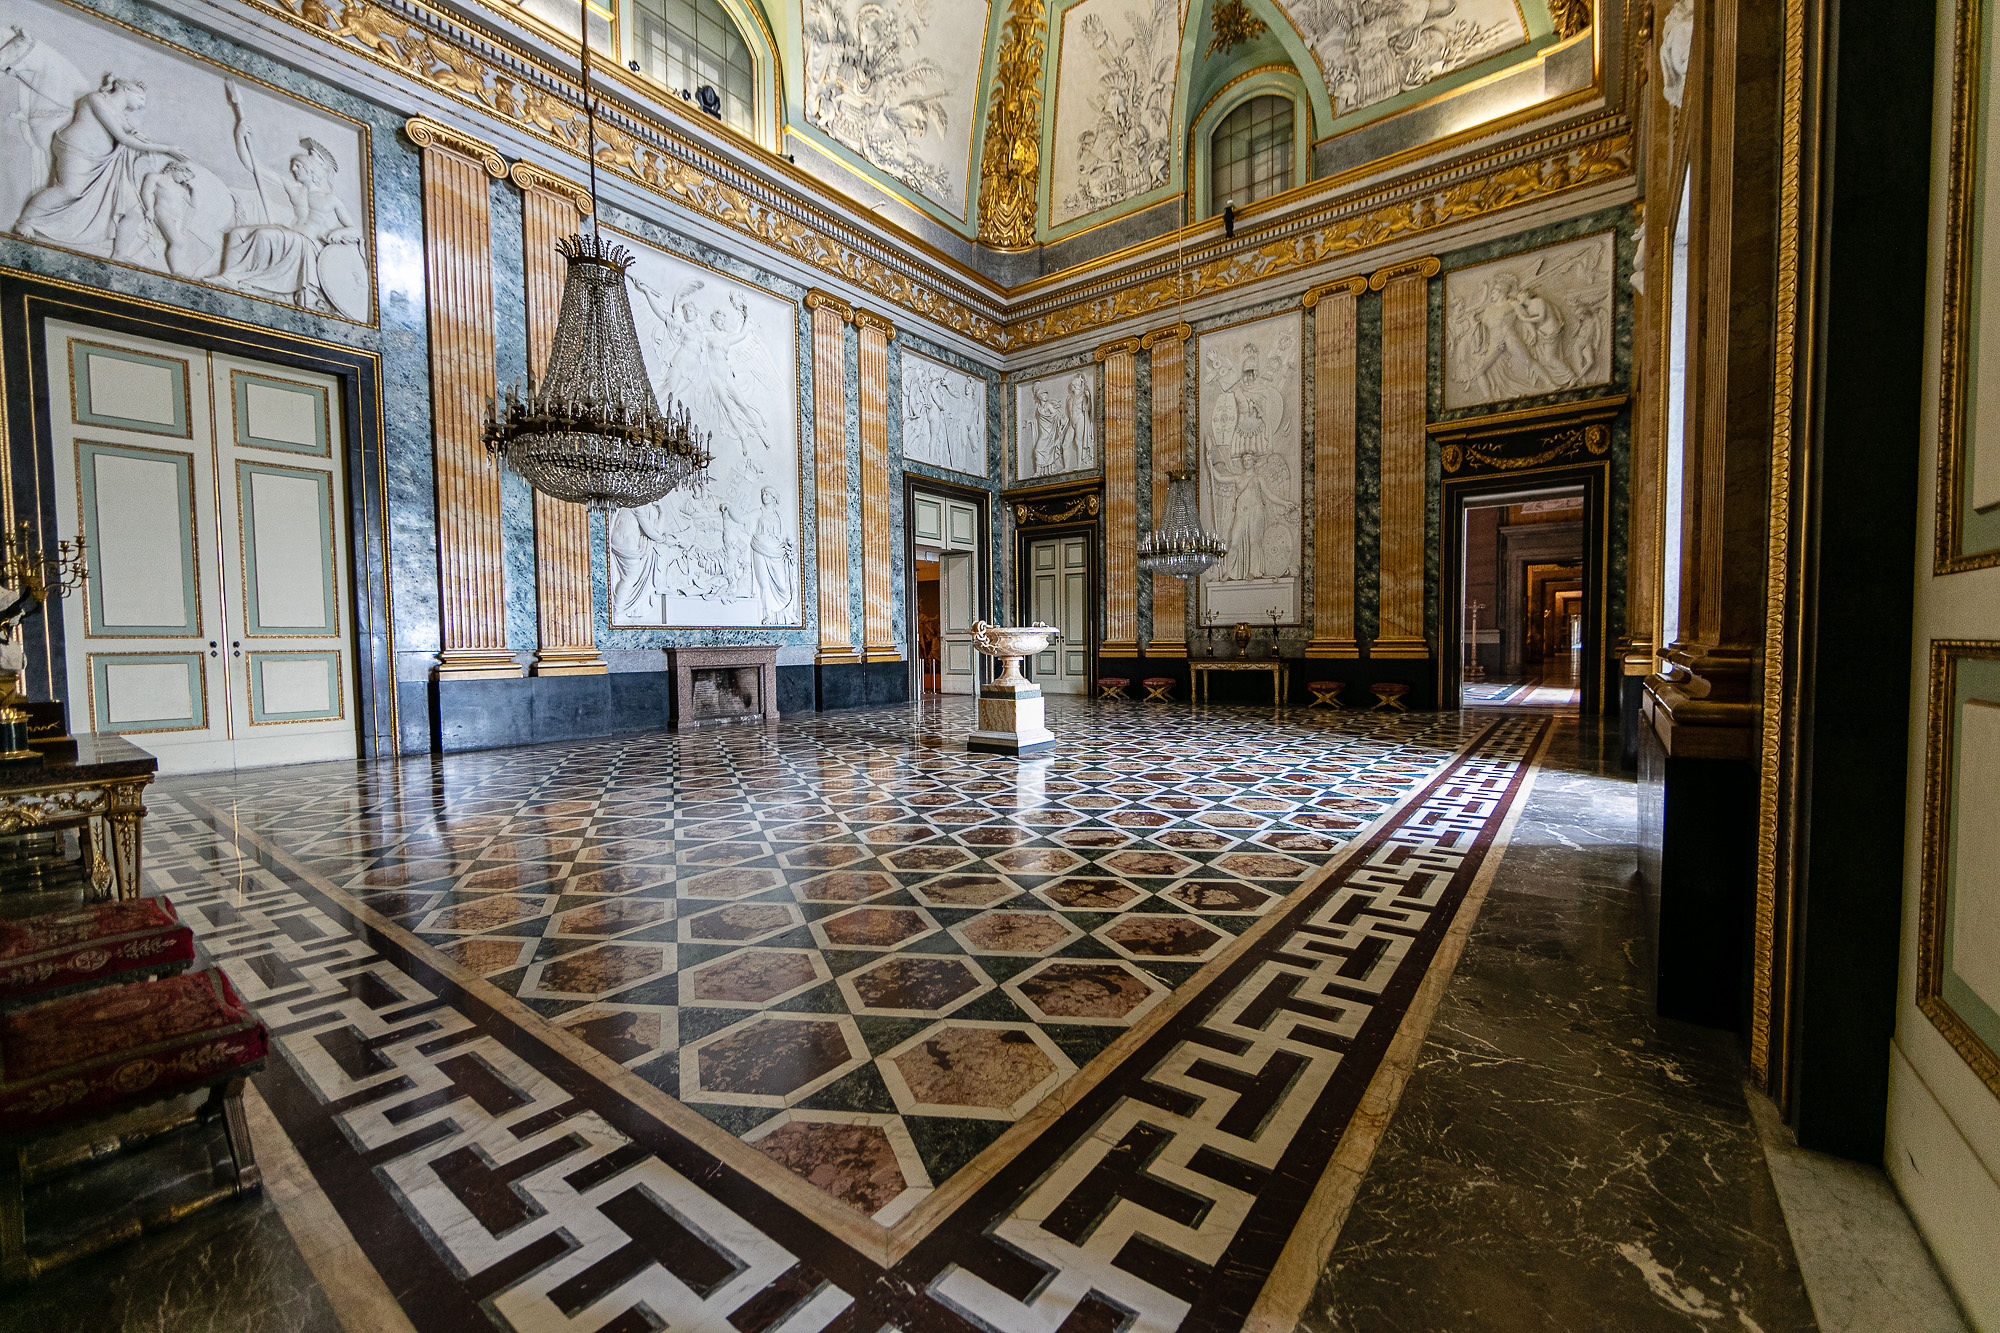 large room in royal palace of caserta with chandelier